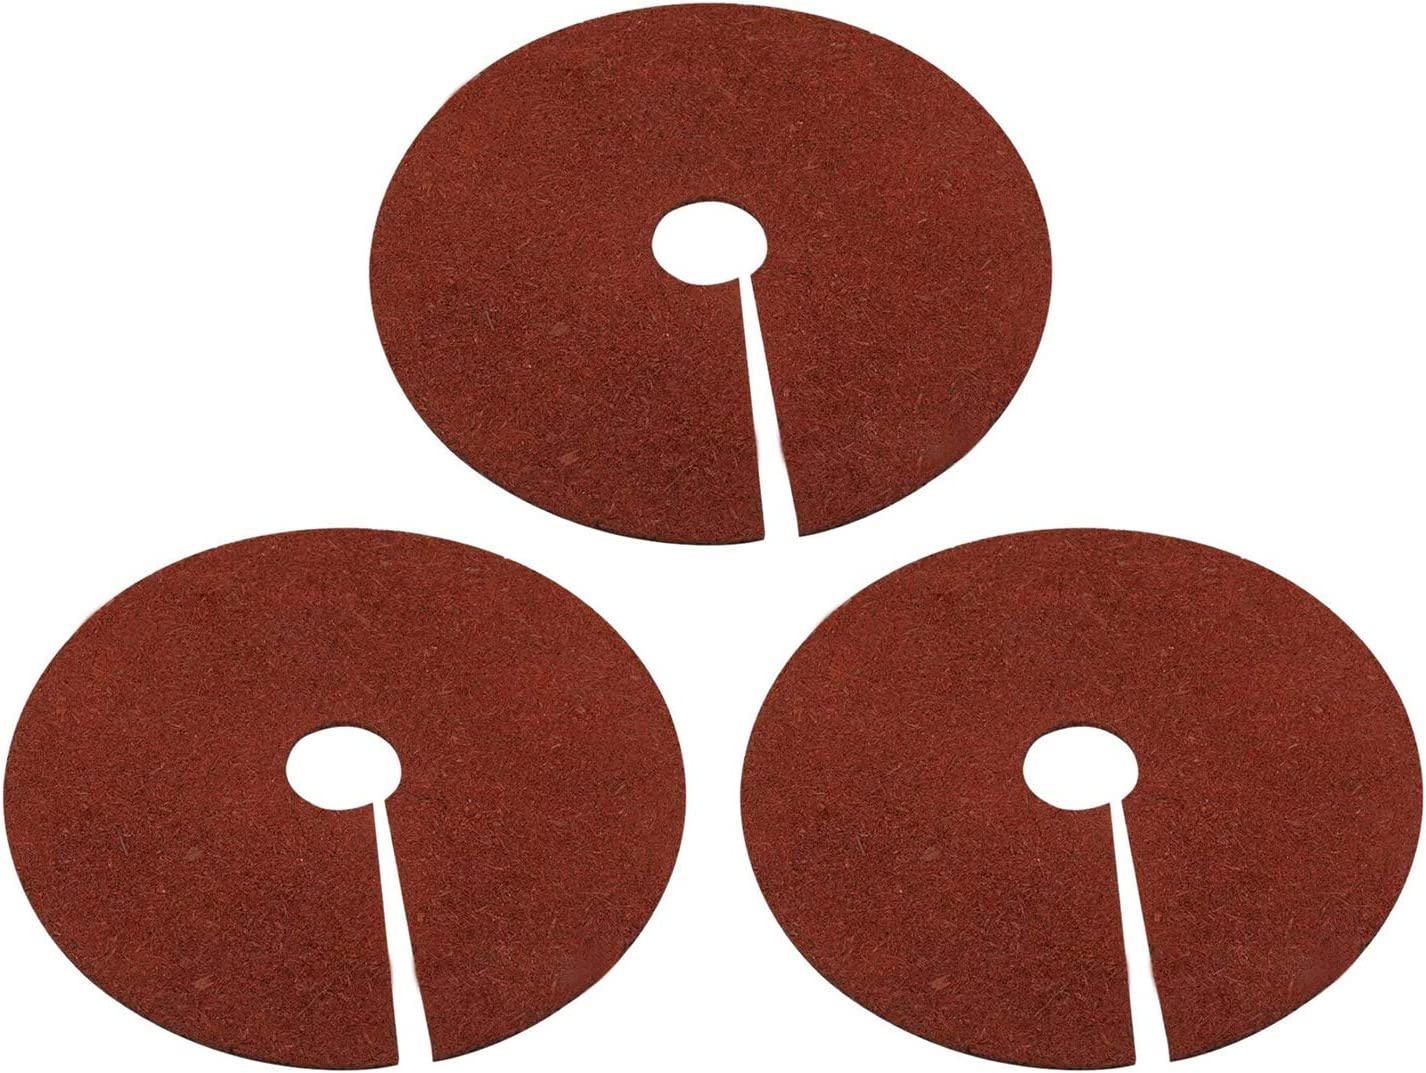 Fasmov Rubber Mulch Ring Tree Protector Mat Tree Protection Weed Mats, 24 inch, 3-Pack